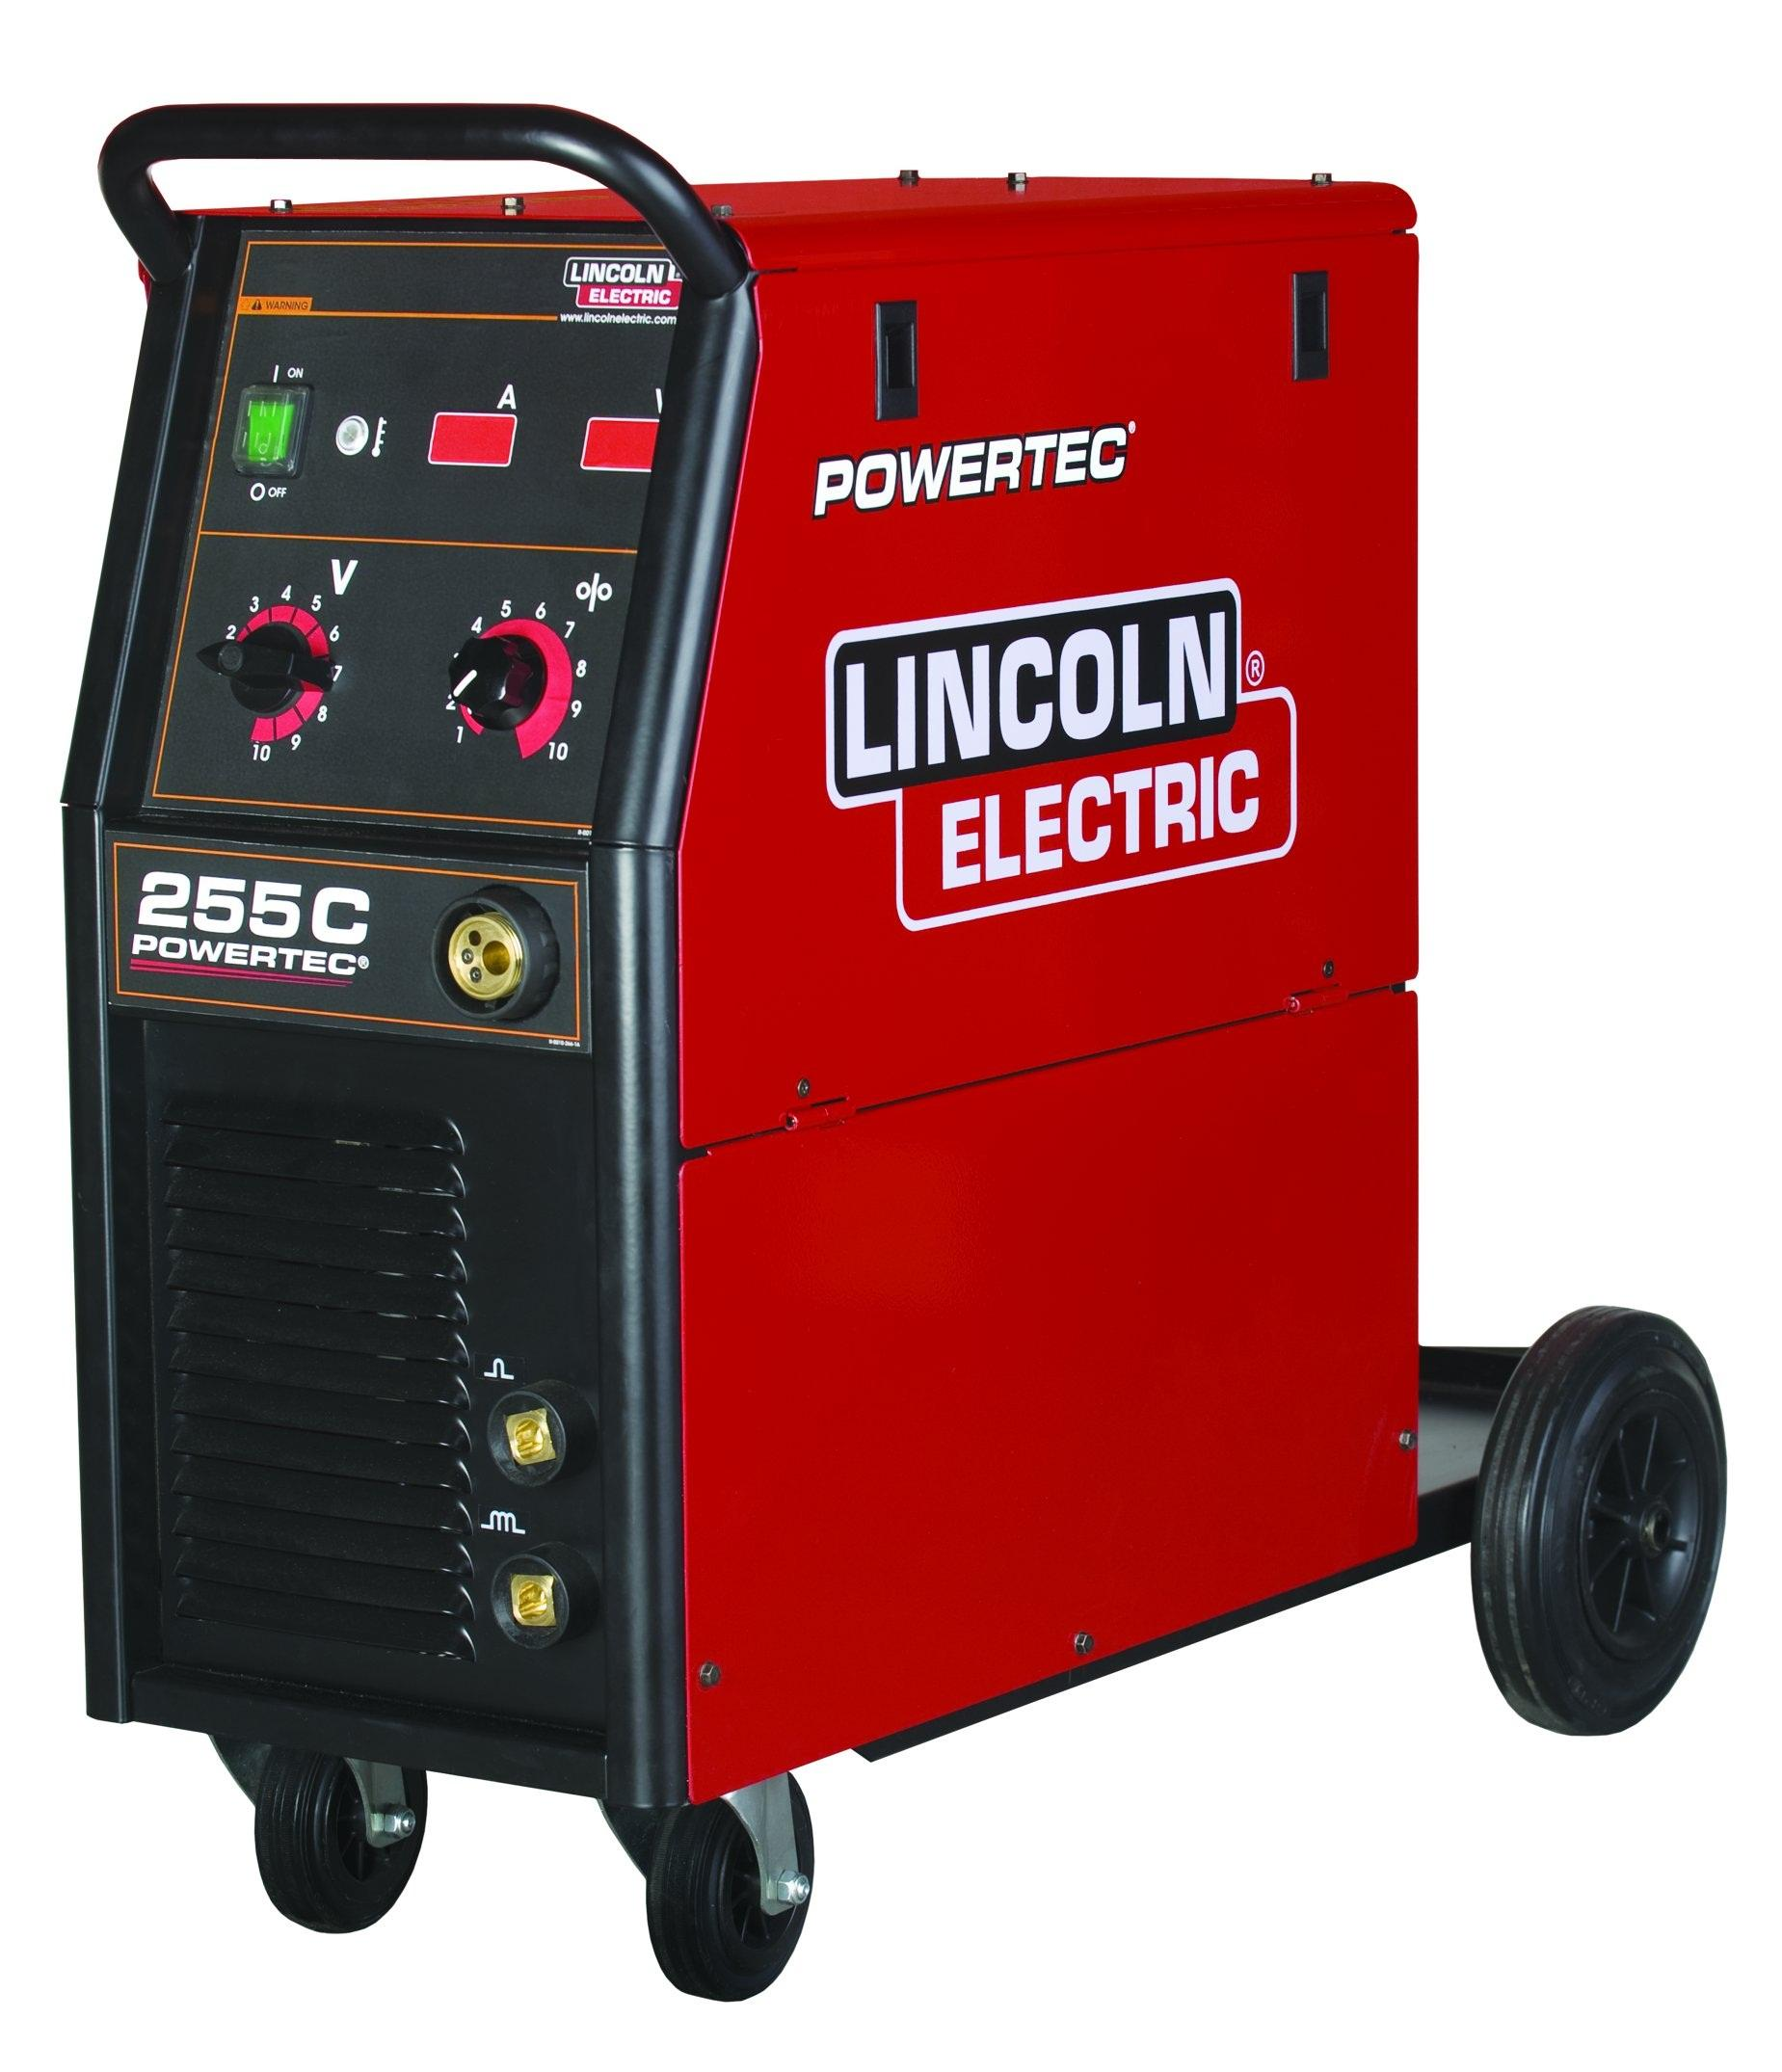 K14055-1P  Lincoln Electric Powertec 255C Mig Welder 400V, 3 Phase, Ready to Weld Package